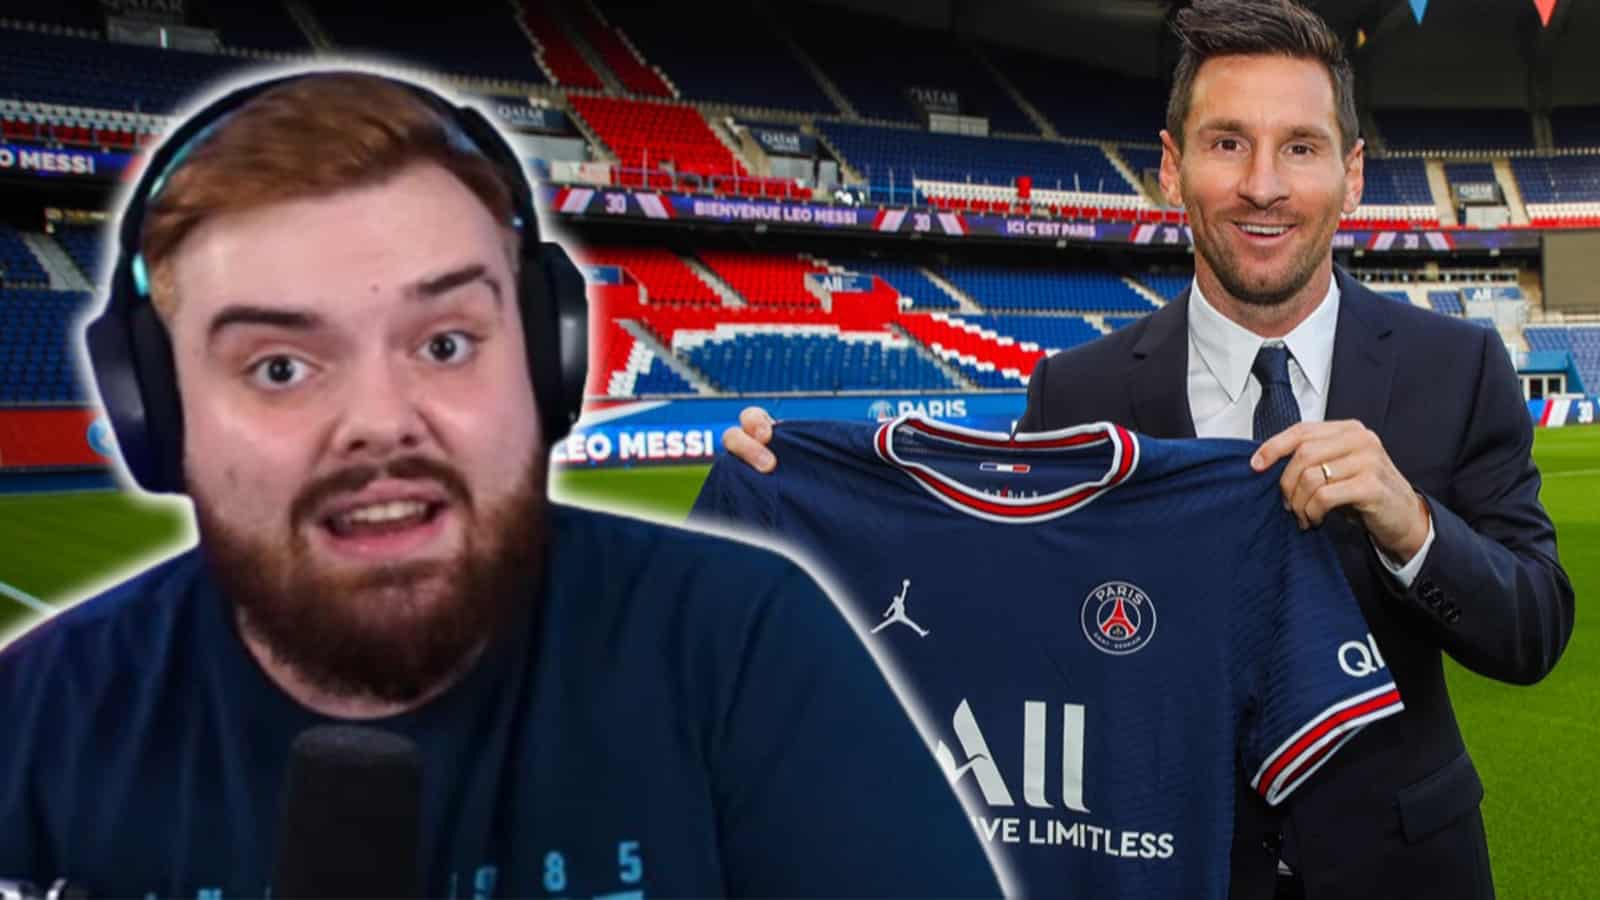 Twitch-star-Ibai-invited-to-Lionel-Messi-PSG-reveal-for-special-stream.jpeg